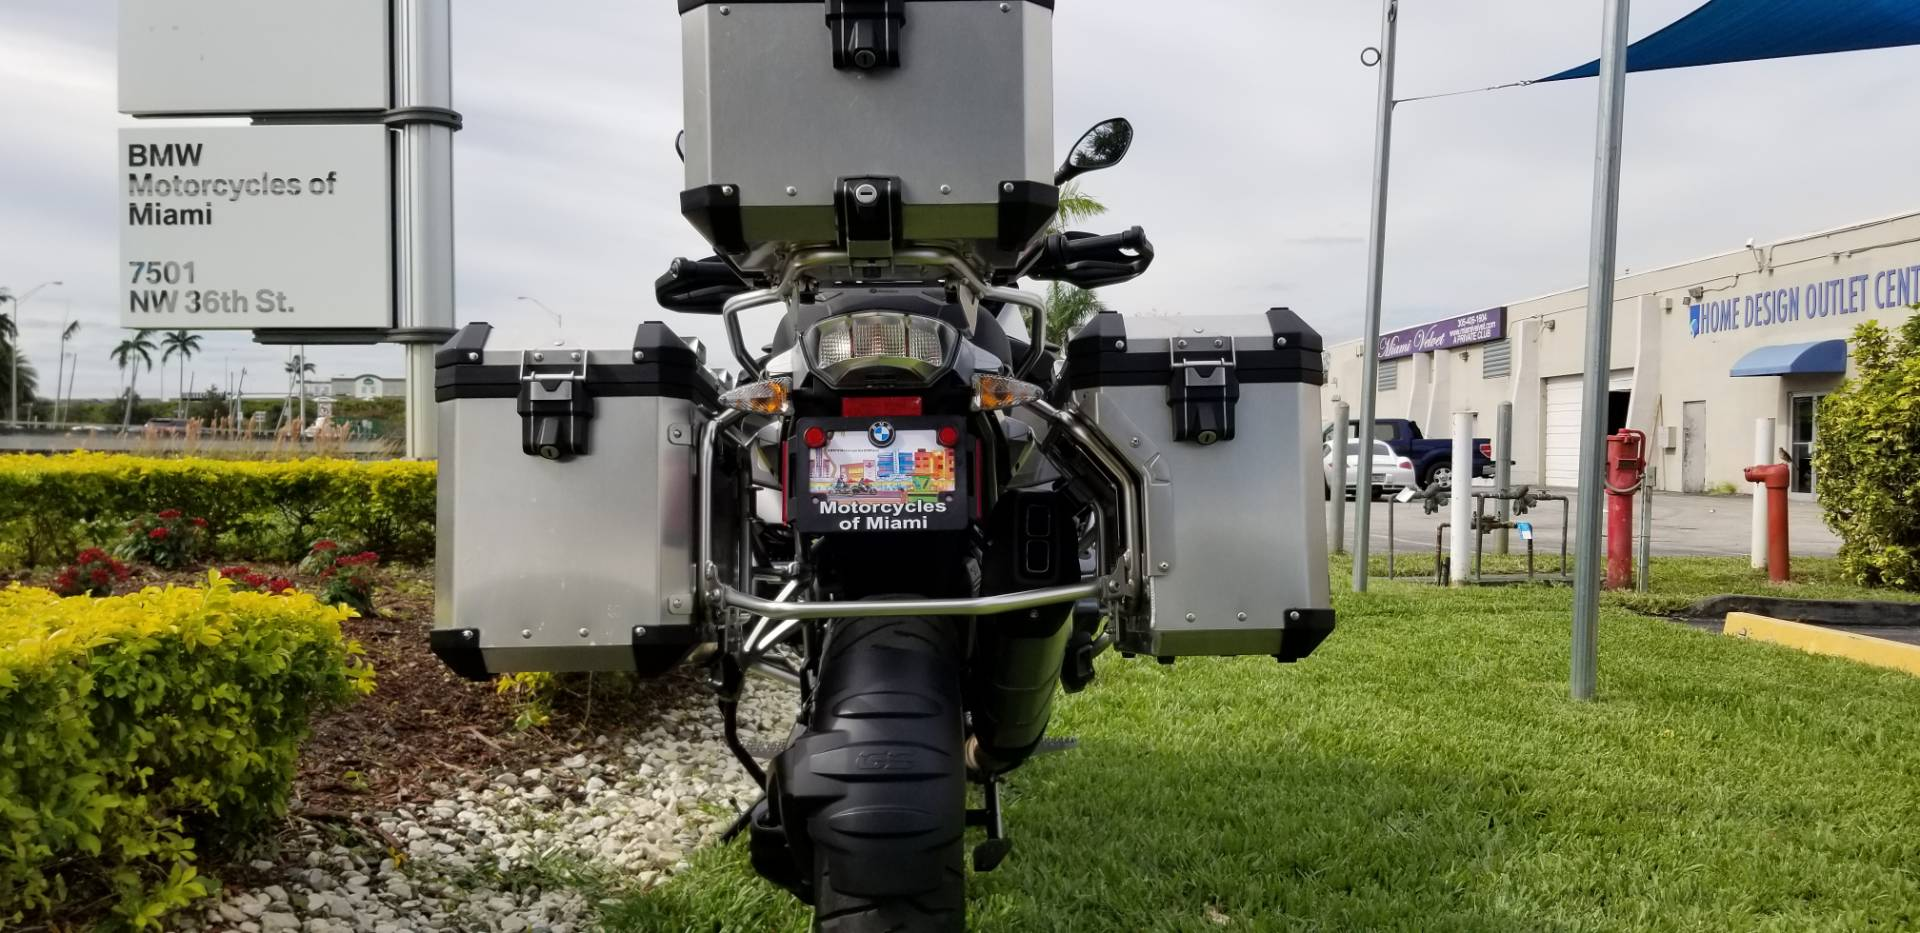 Used 2017 BMW R 1200 GSA for sale, Pre-owned BMW R1200GSA for sale, BMW Motorcycle Adventure, used BMW Adventure triple black, BMW Motorcycles of Miami, Motorcycles of Miami, Motorcycles Miami, New Motorcycles, Used Motorcycles, pre-owned. #BMWMotorcyclesOfMiami #MotorcyclesOfMiami - Photo 12